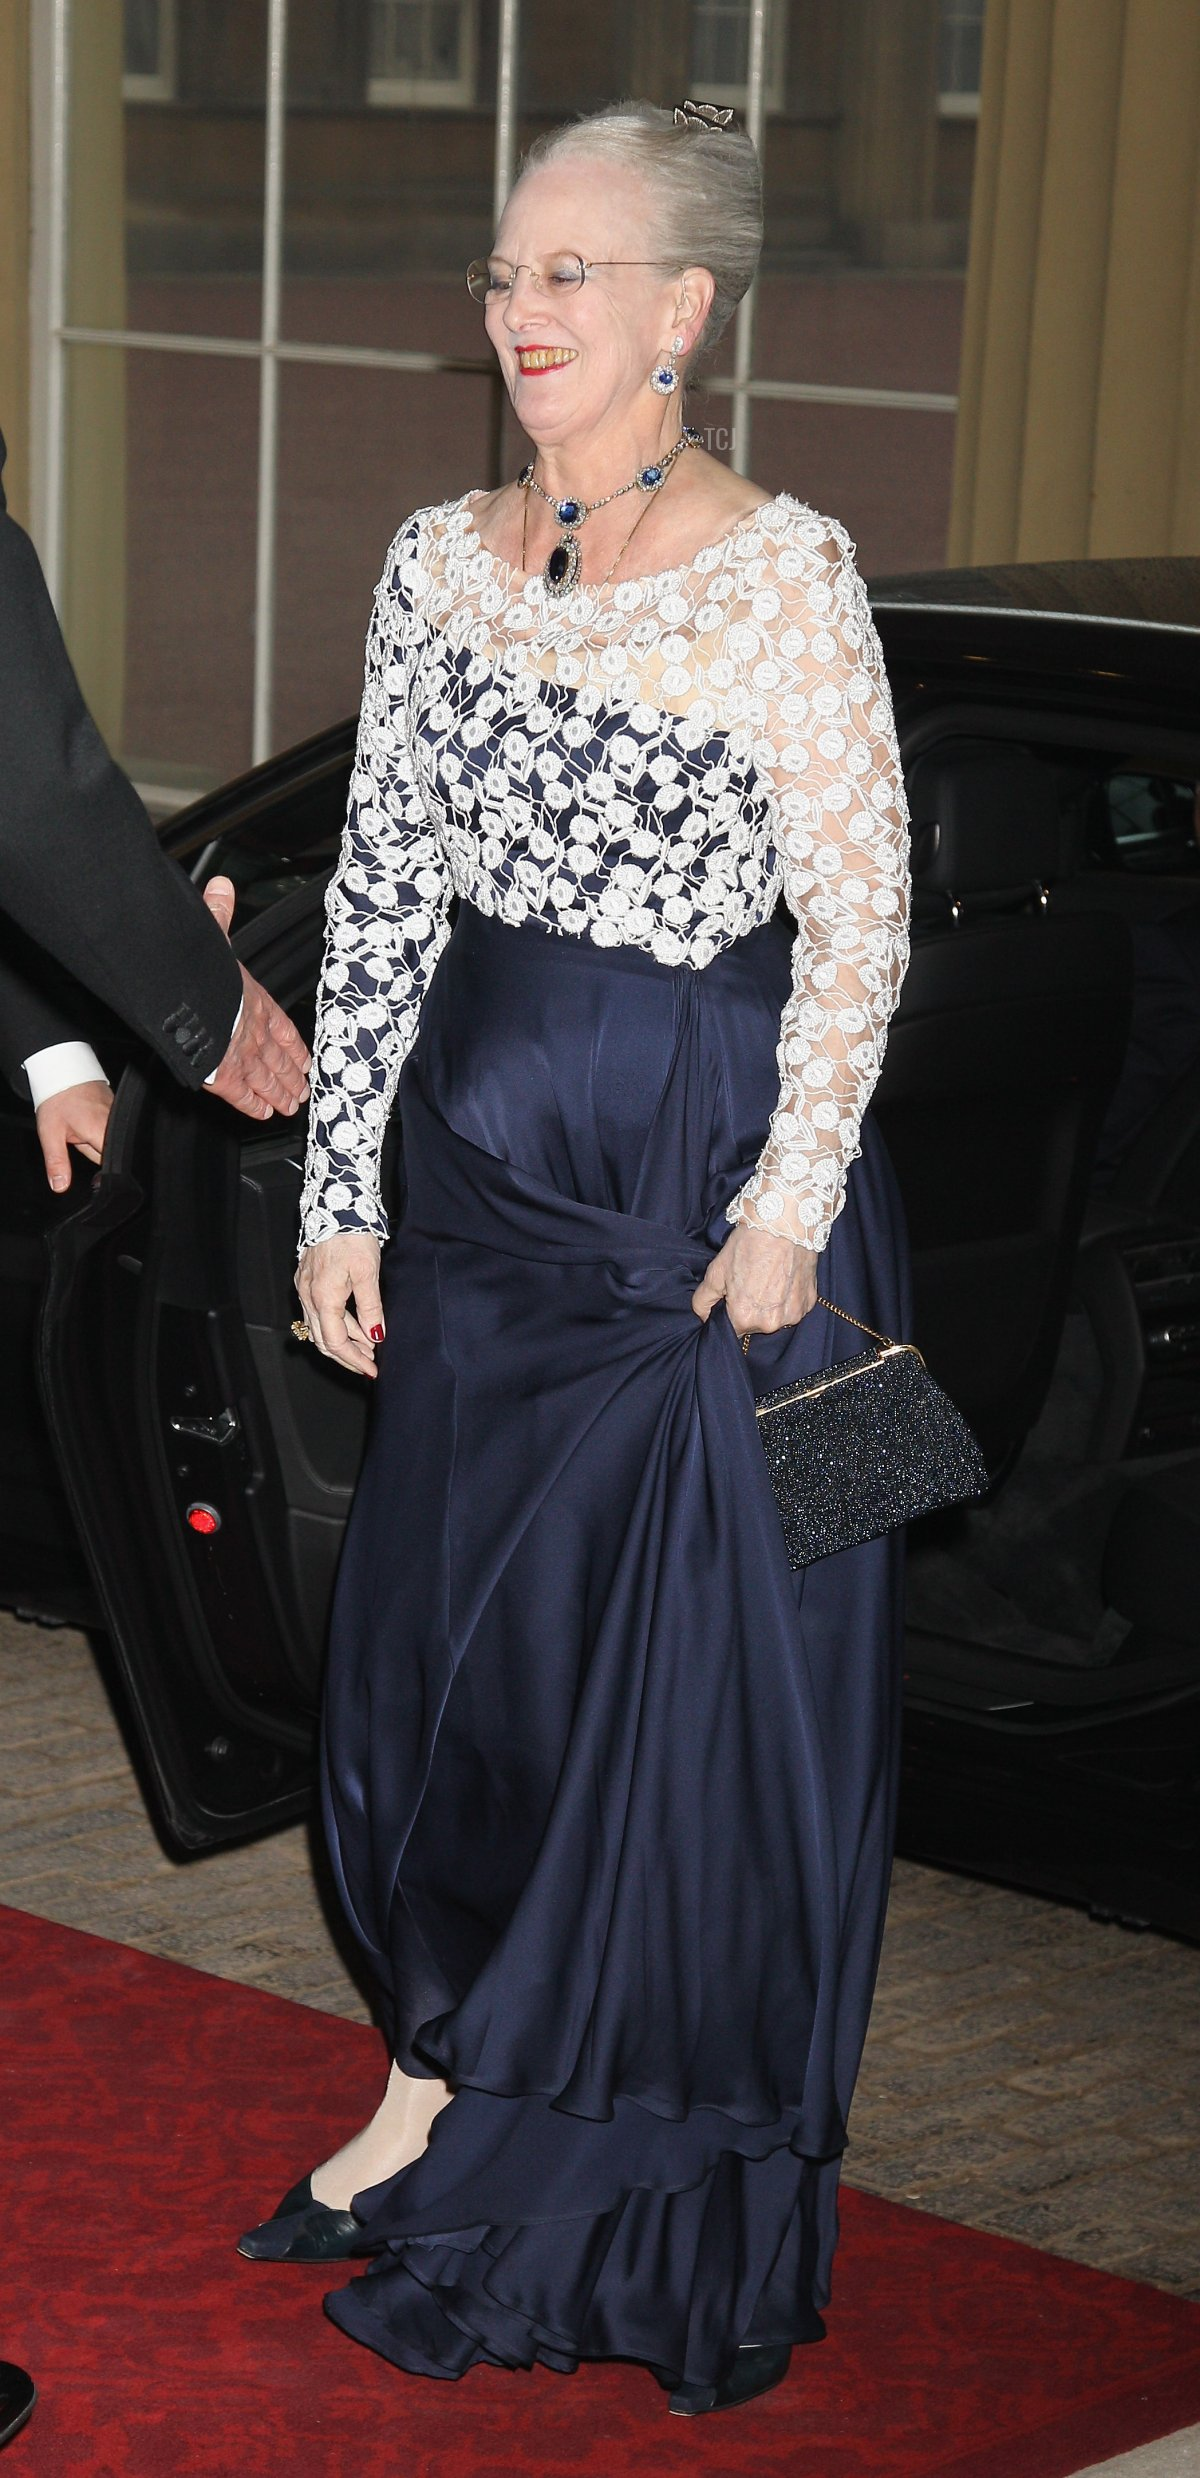 Queen Margarethe II of Denmark attends a dinner for foreign Sovereigns to commemorate the Diamond Jubilee at Buckingham Palace on May 18, 2012 in London, England